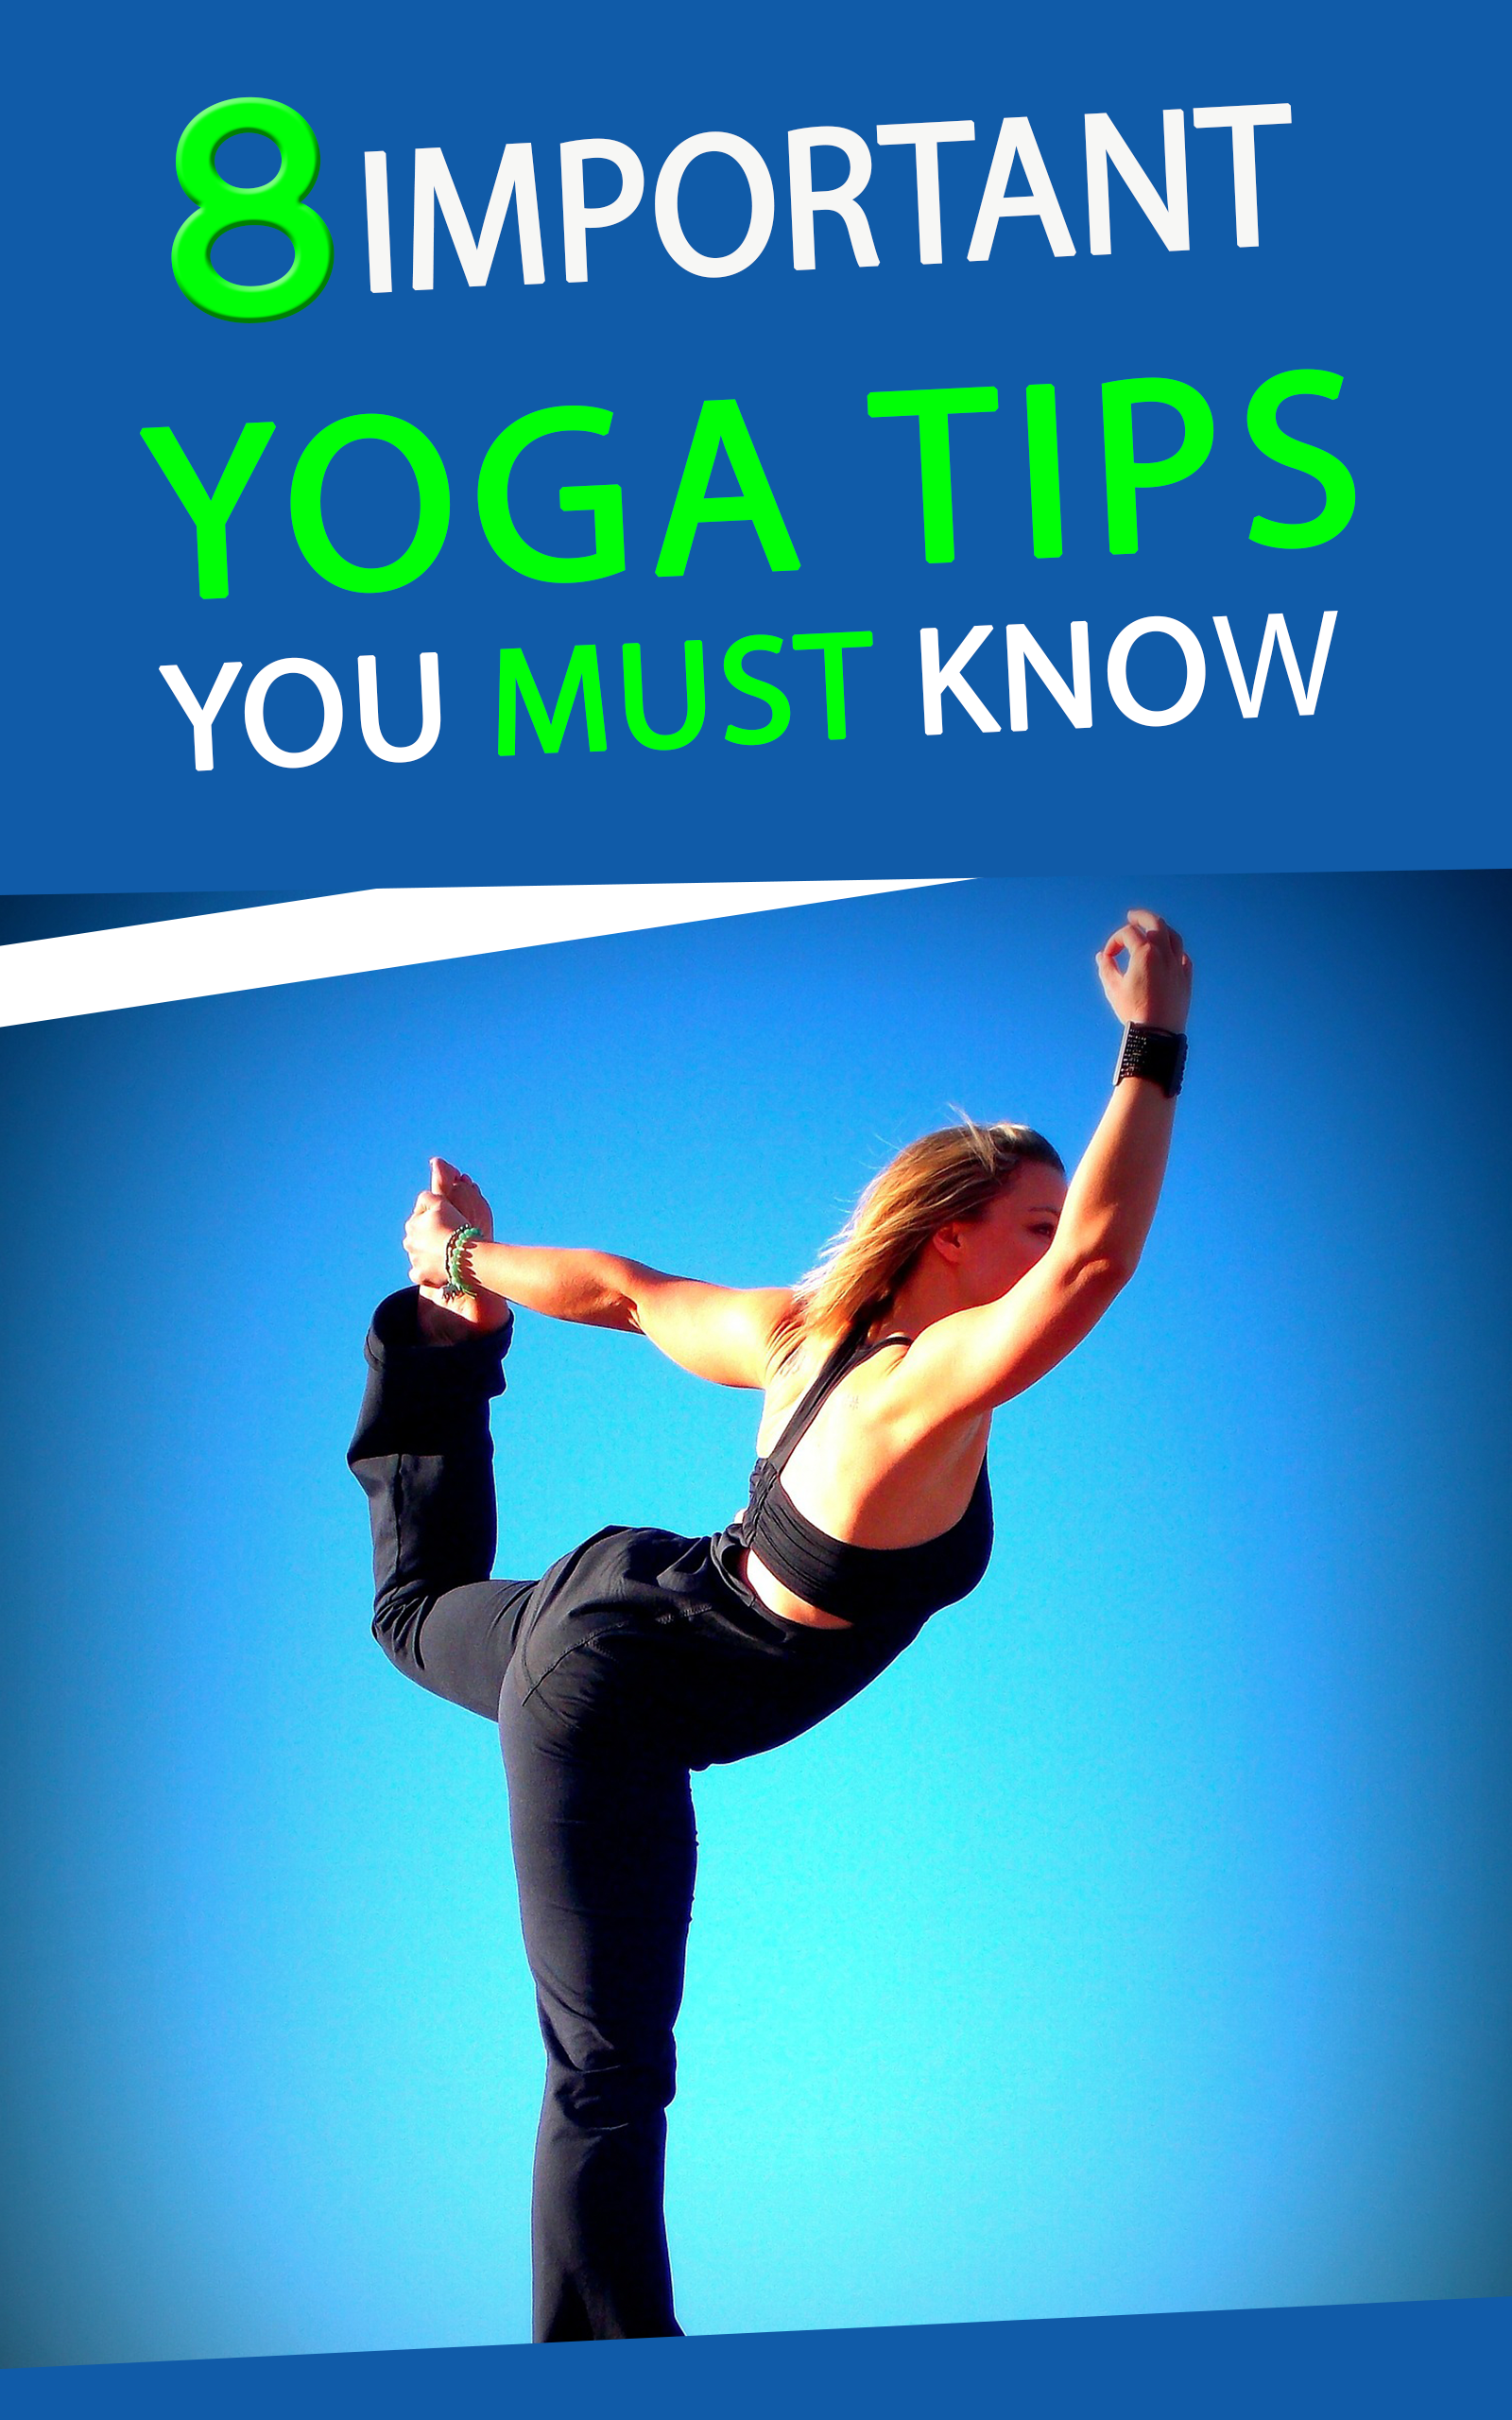 Free Top Yoga Tips ebook guide., Get Yours Here!